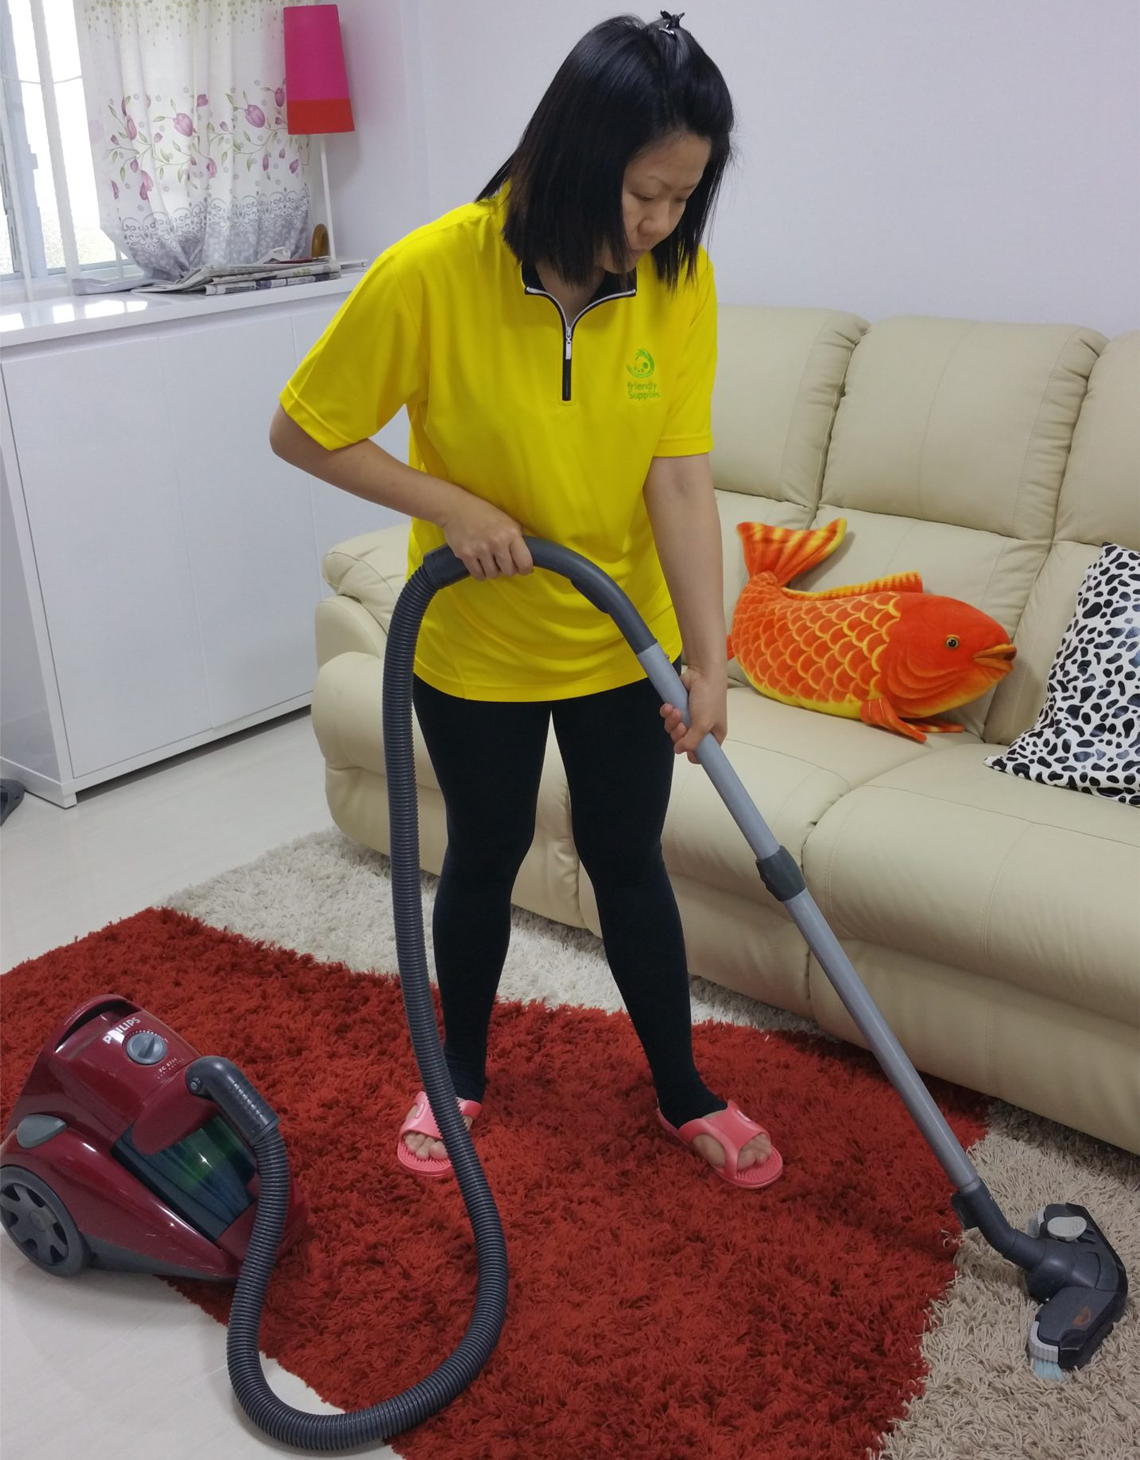 Cleaning-image